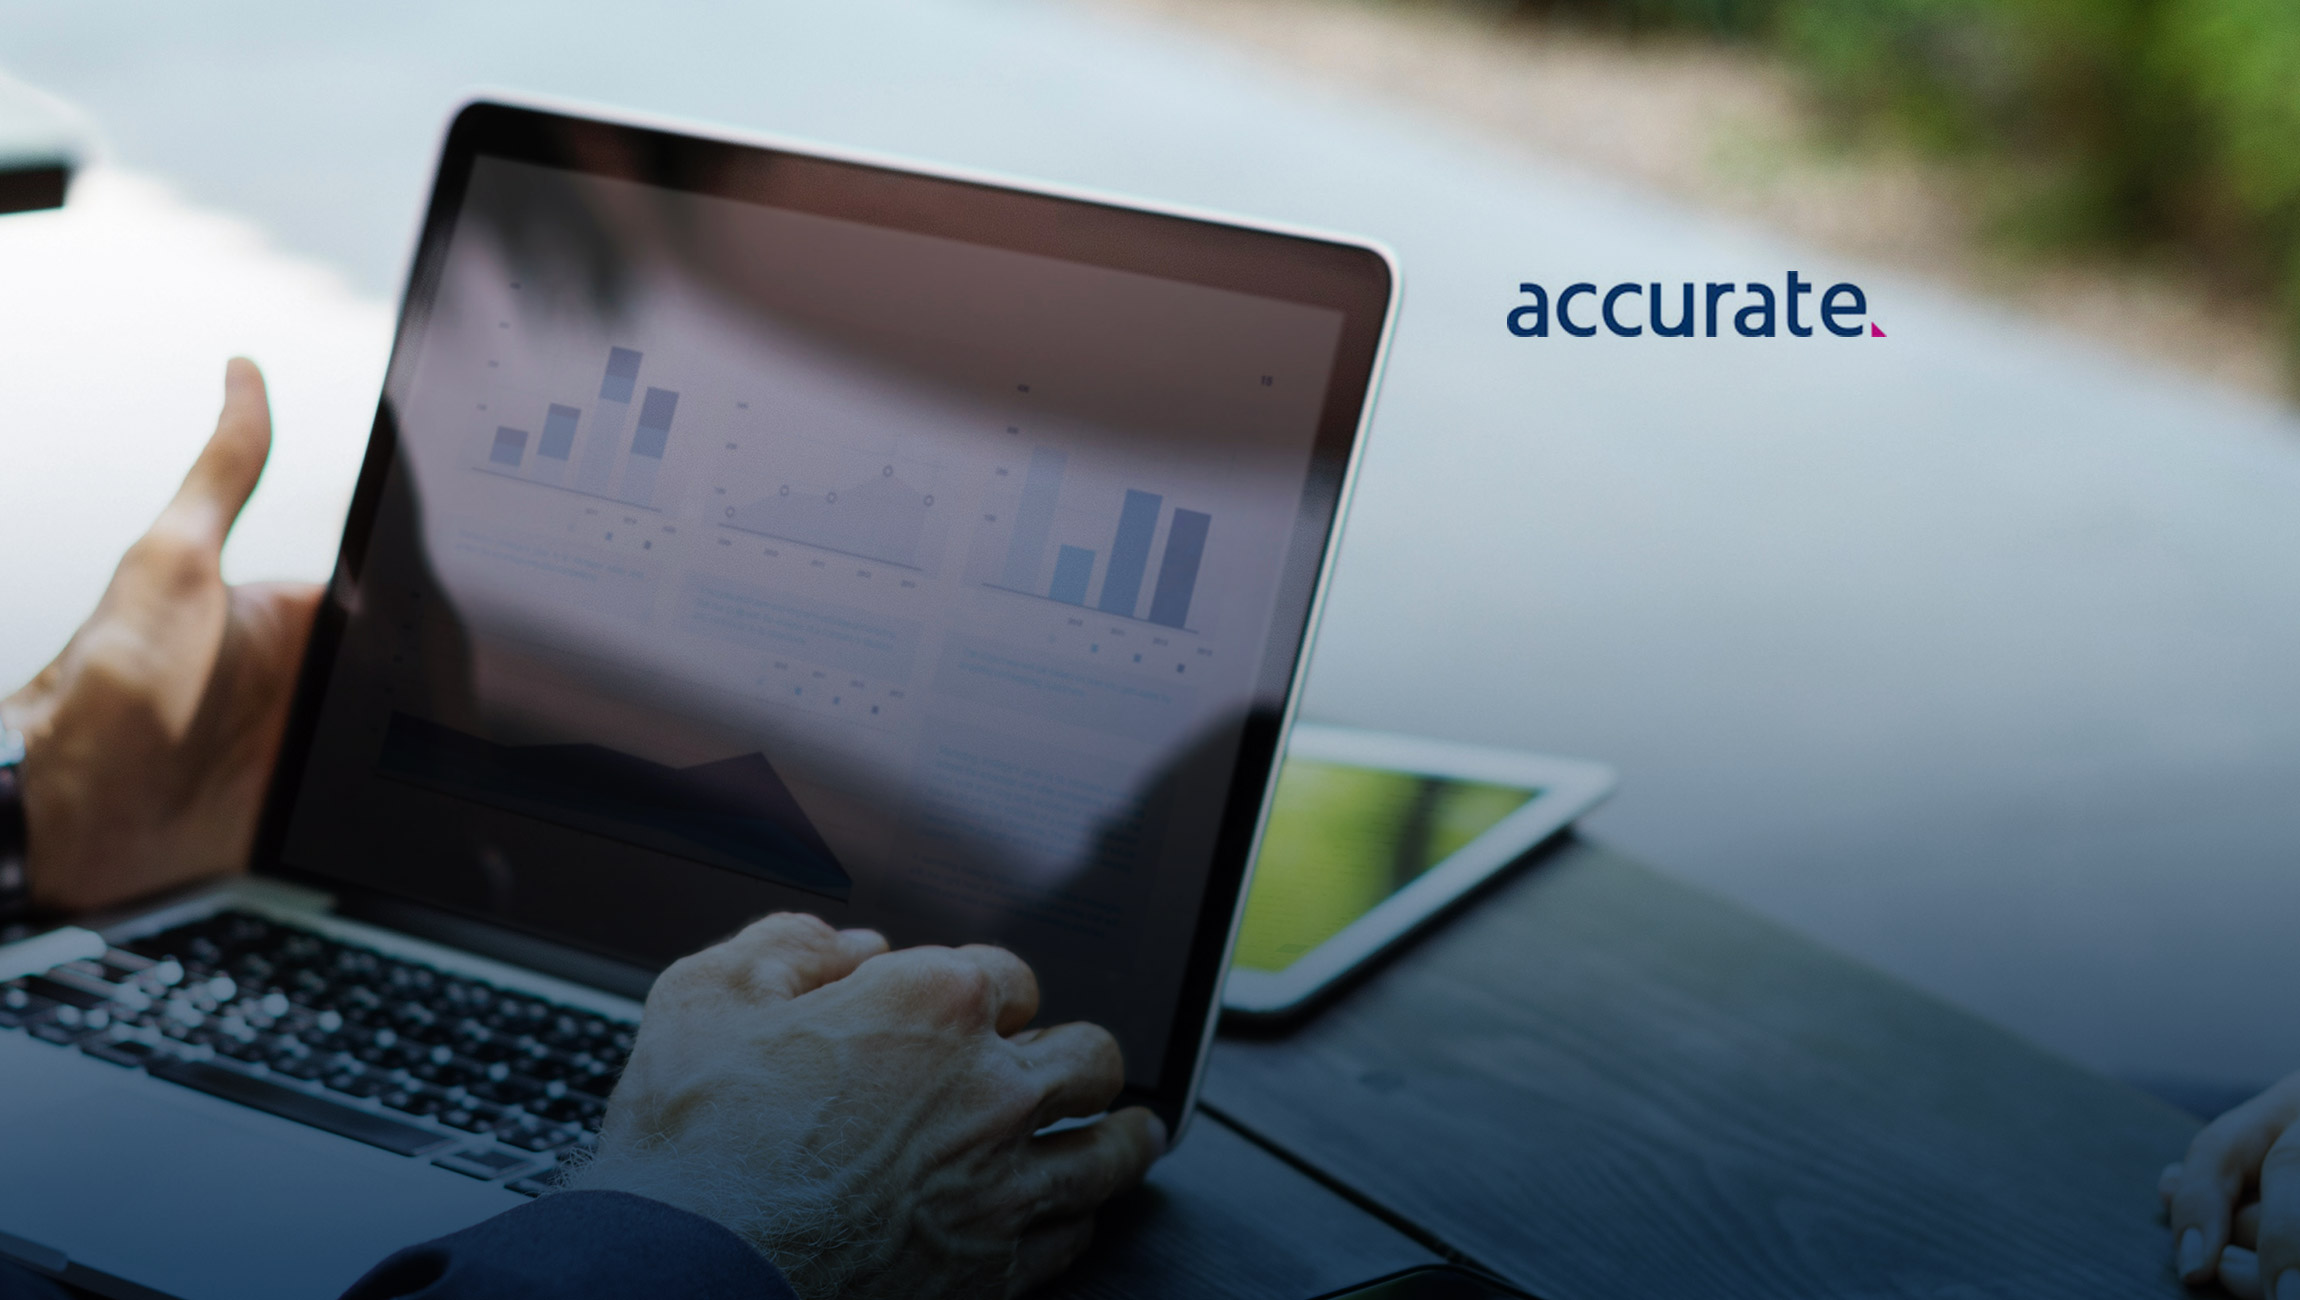 Accurate Background Prioritizes Strategic Growth and Operational Initiatives for 2021